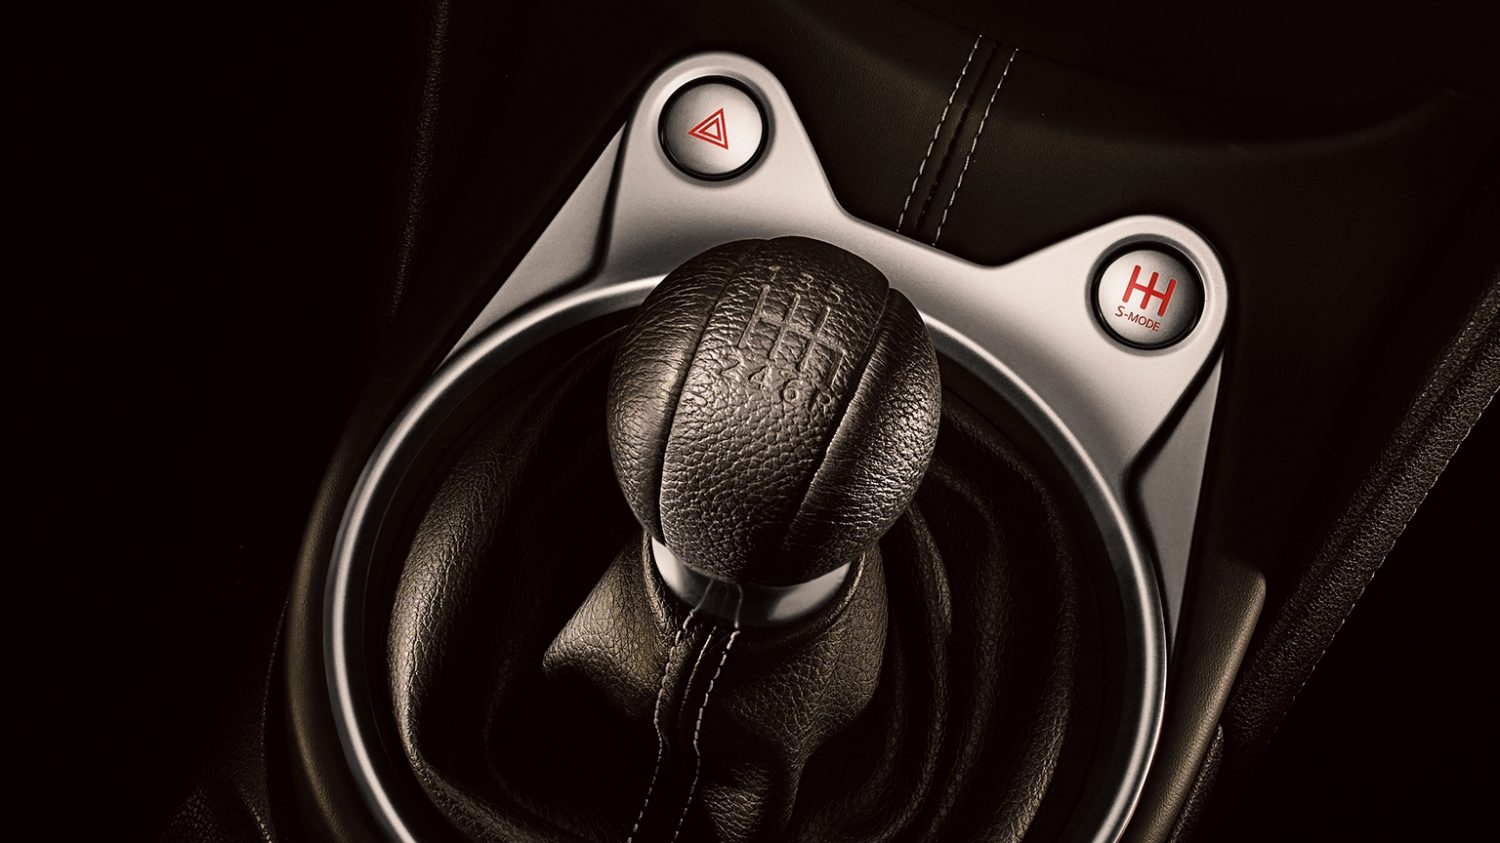 Manual transmission shifter